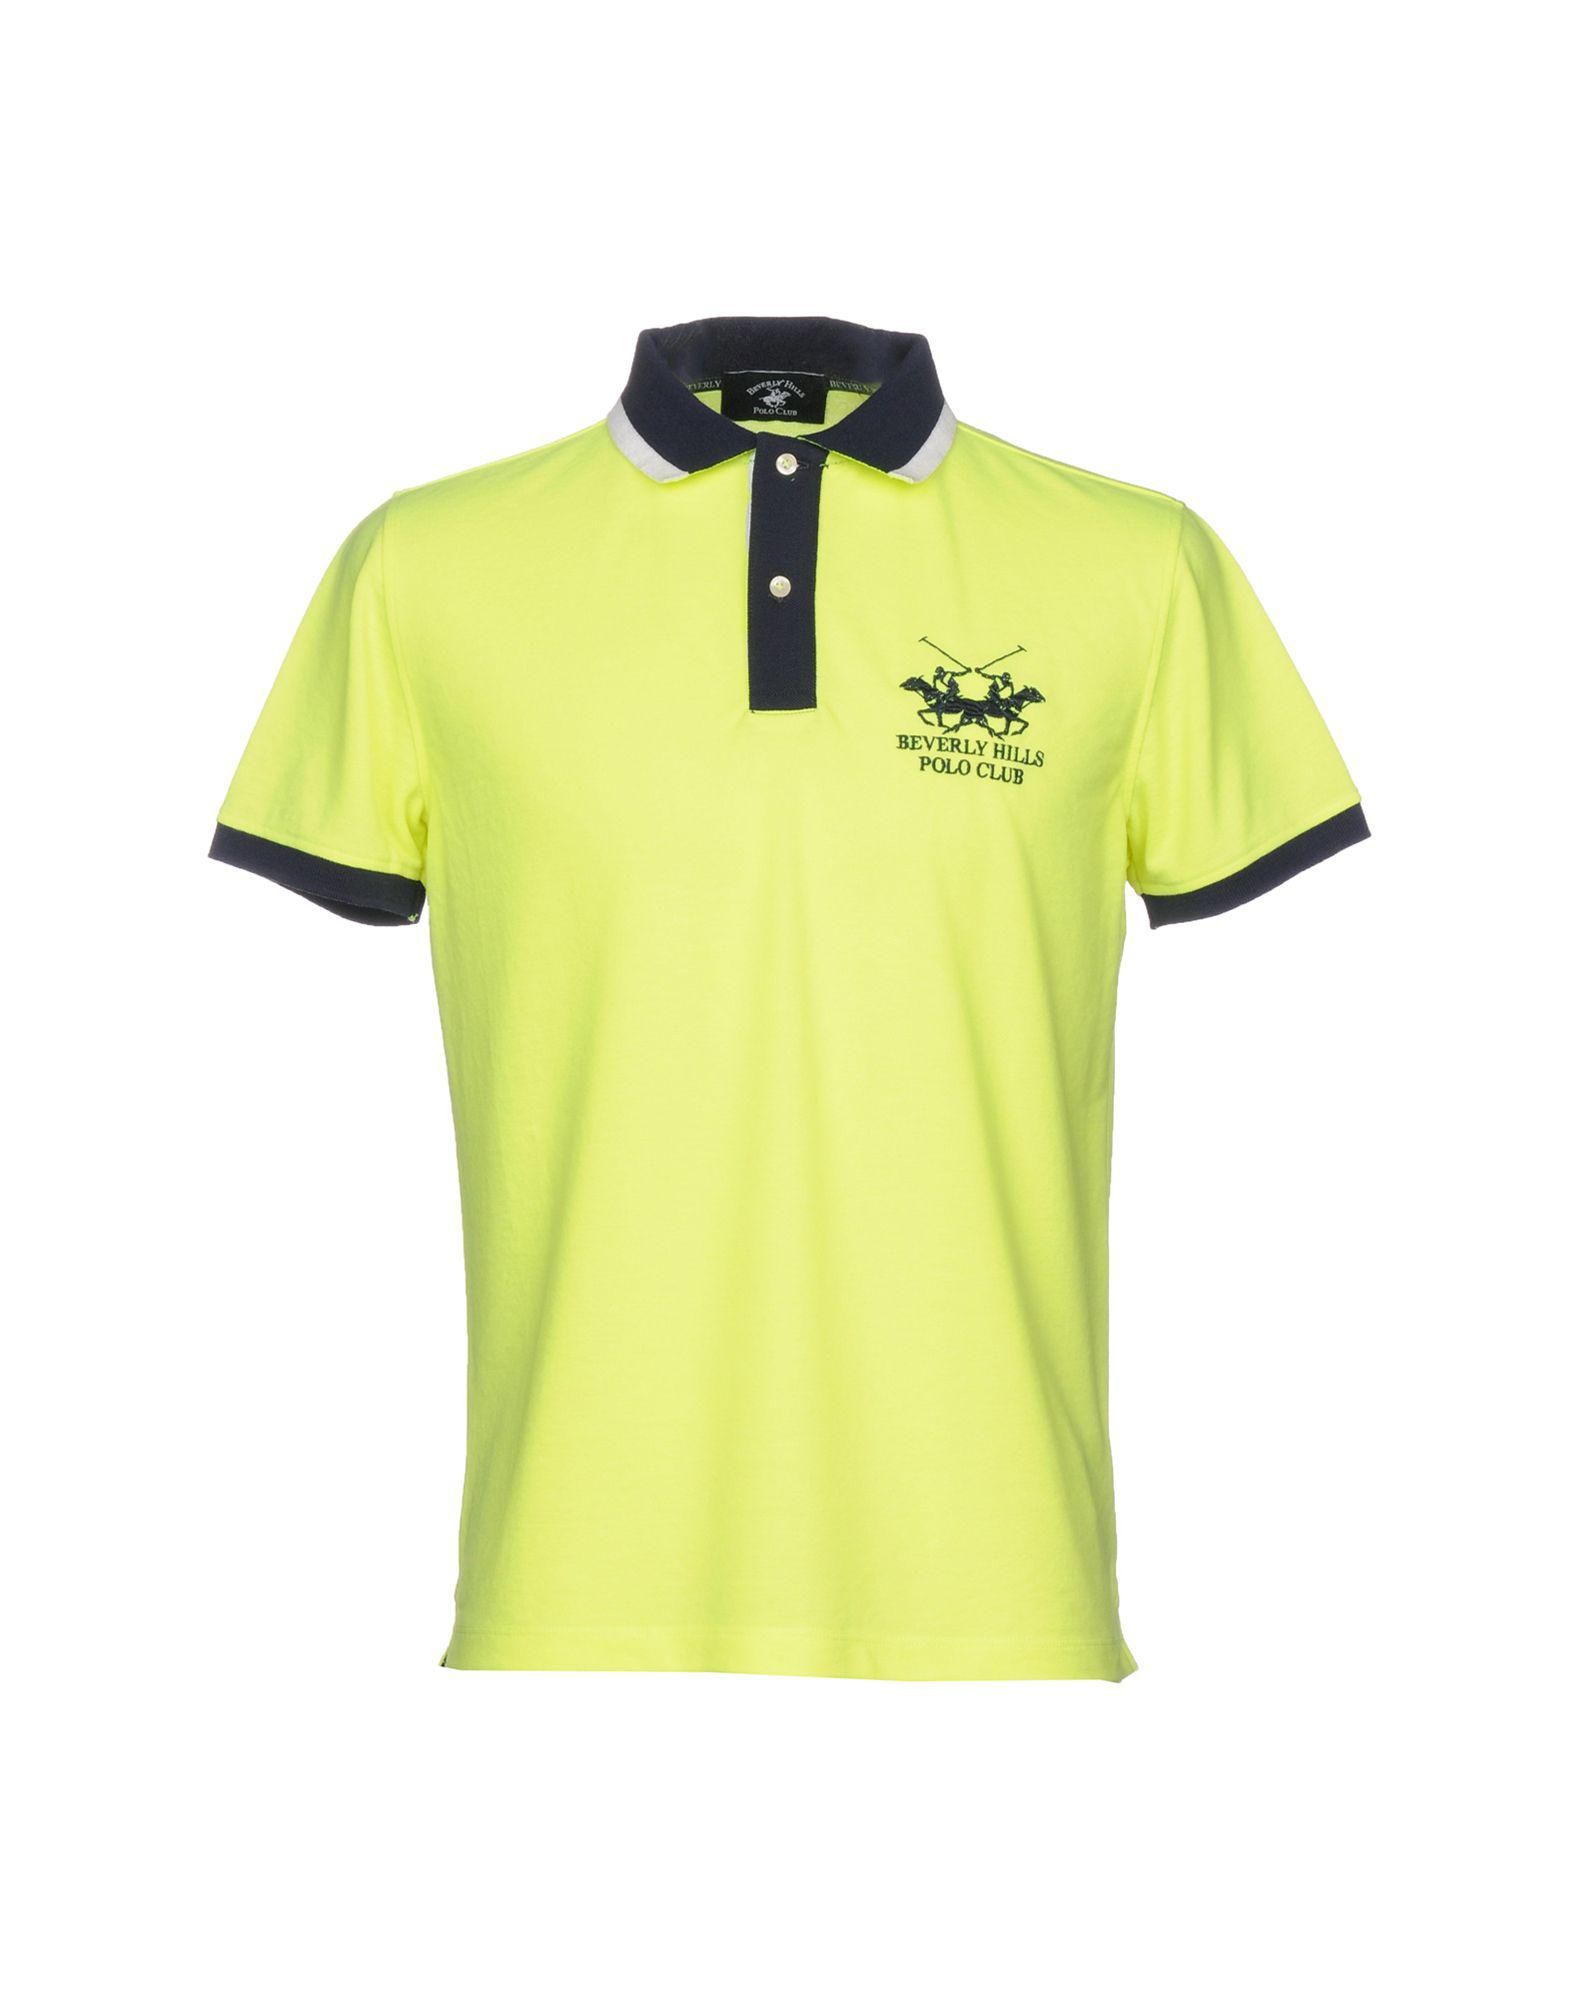 Beverly Hills Polo Club Clothing Wikipedia